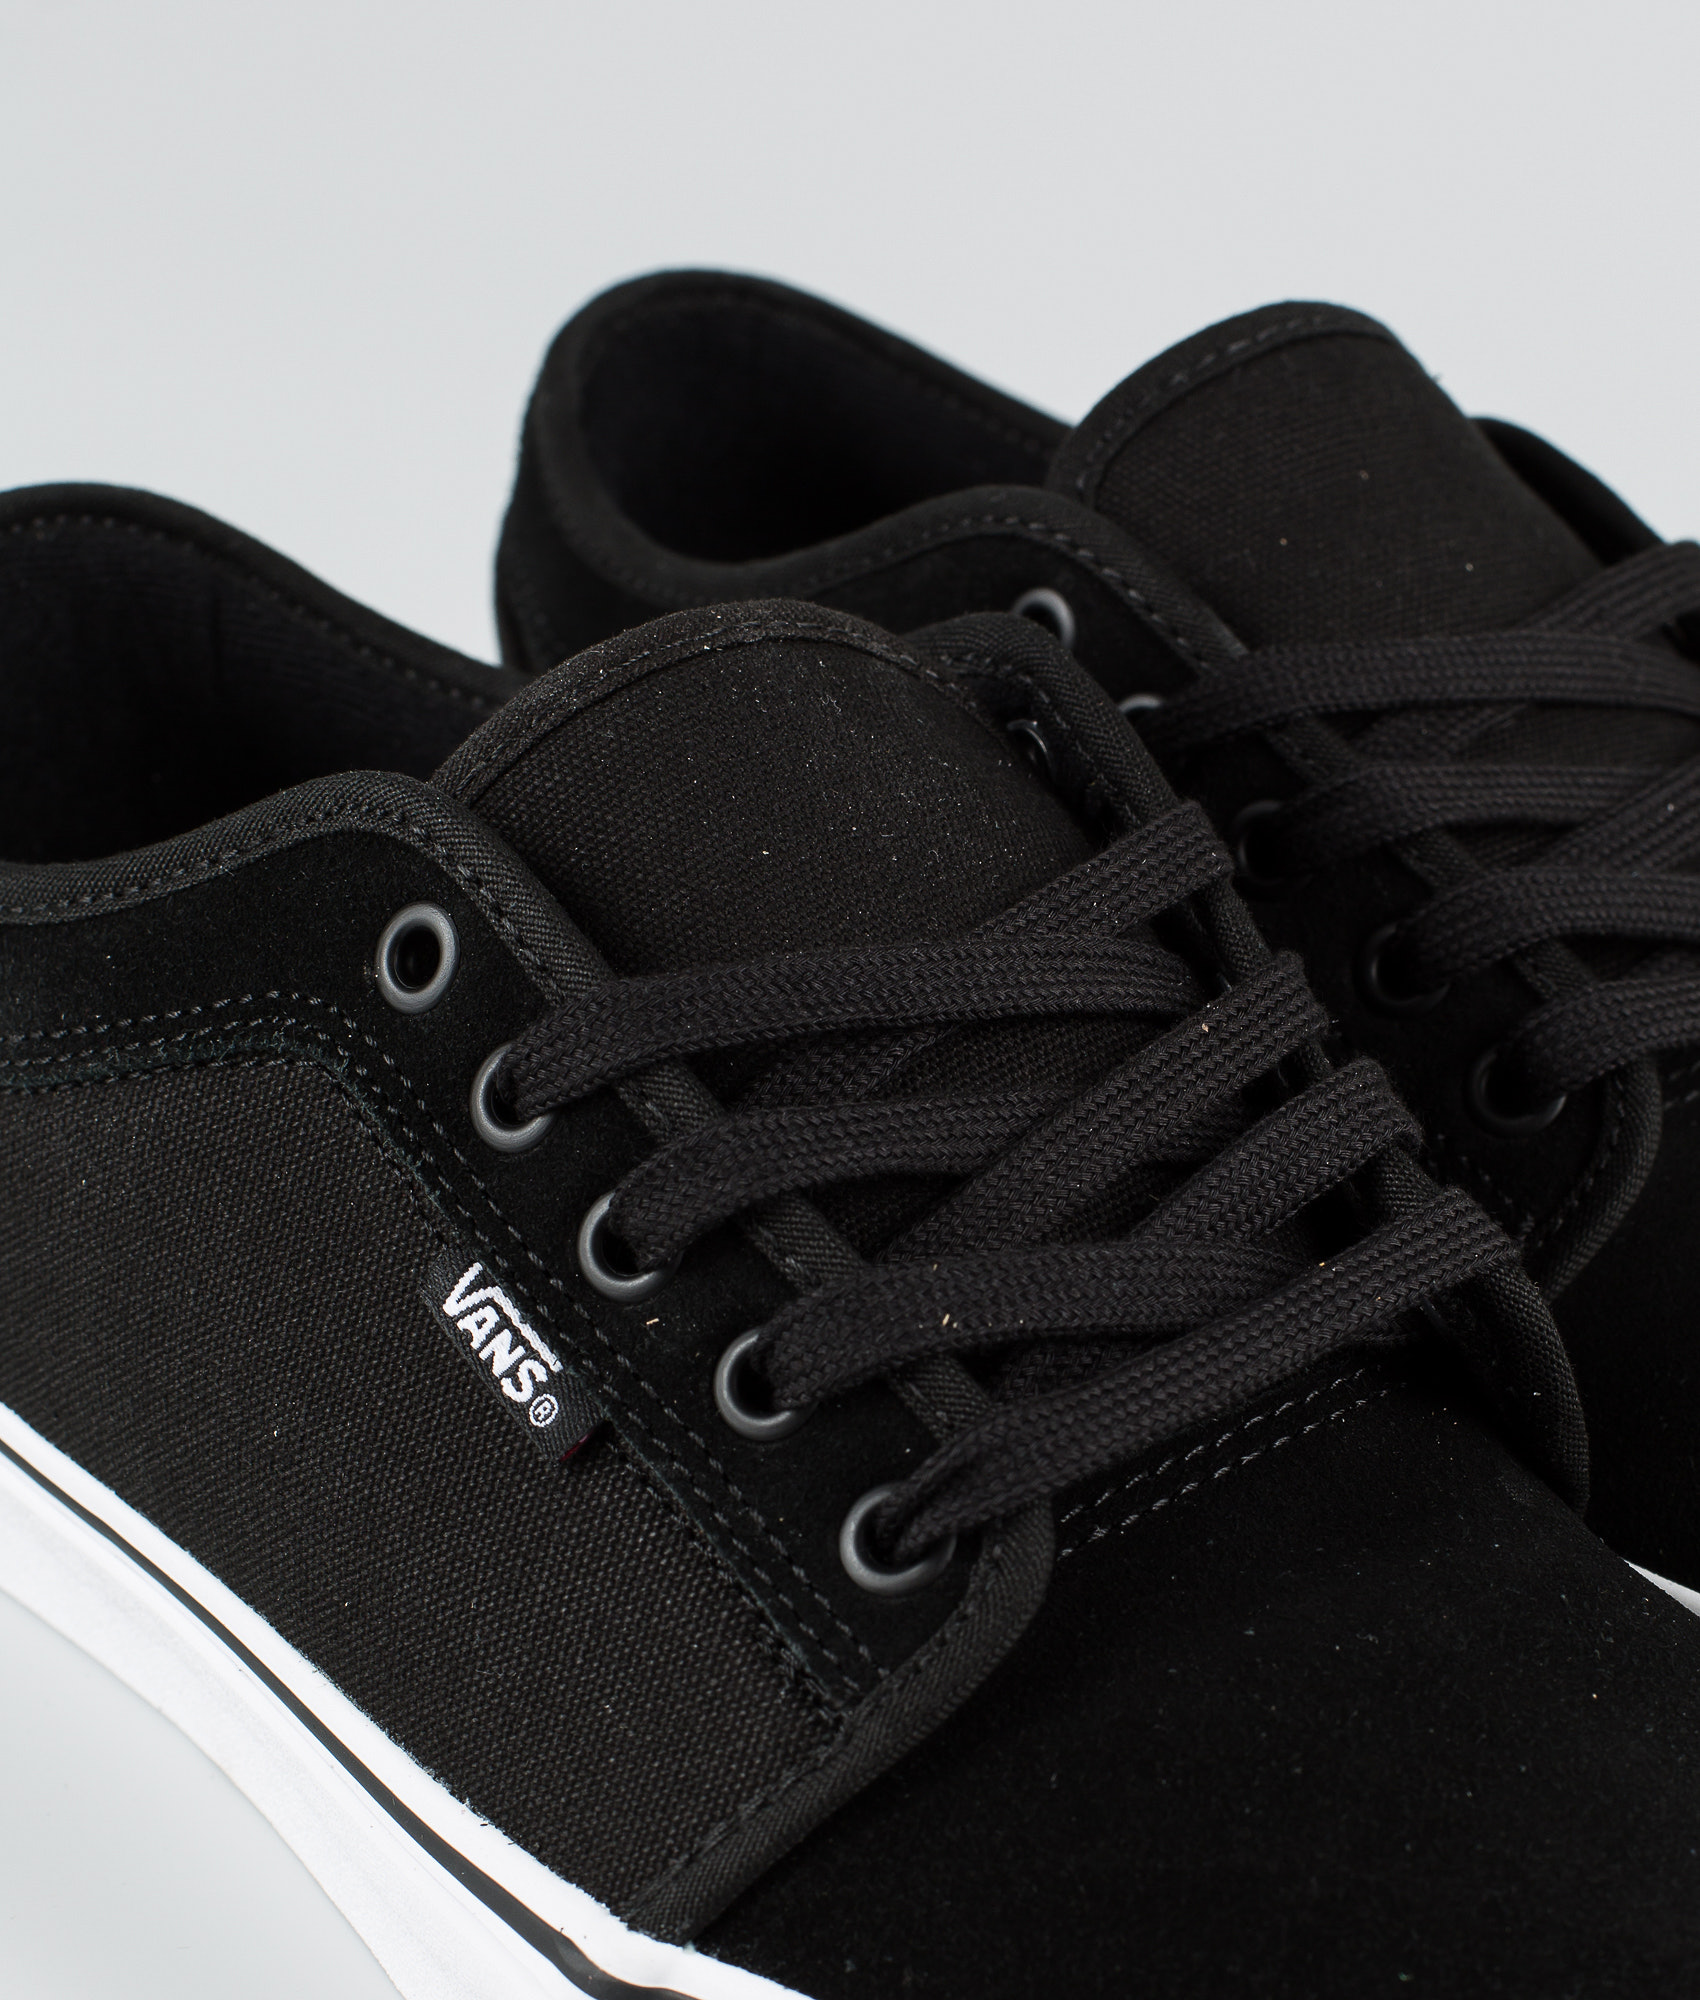 3eeba9ffcb Vans Chukka Low Shoes (Suede) Black True White - Ridestore.com